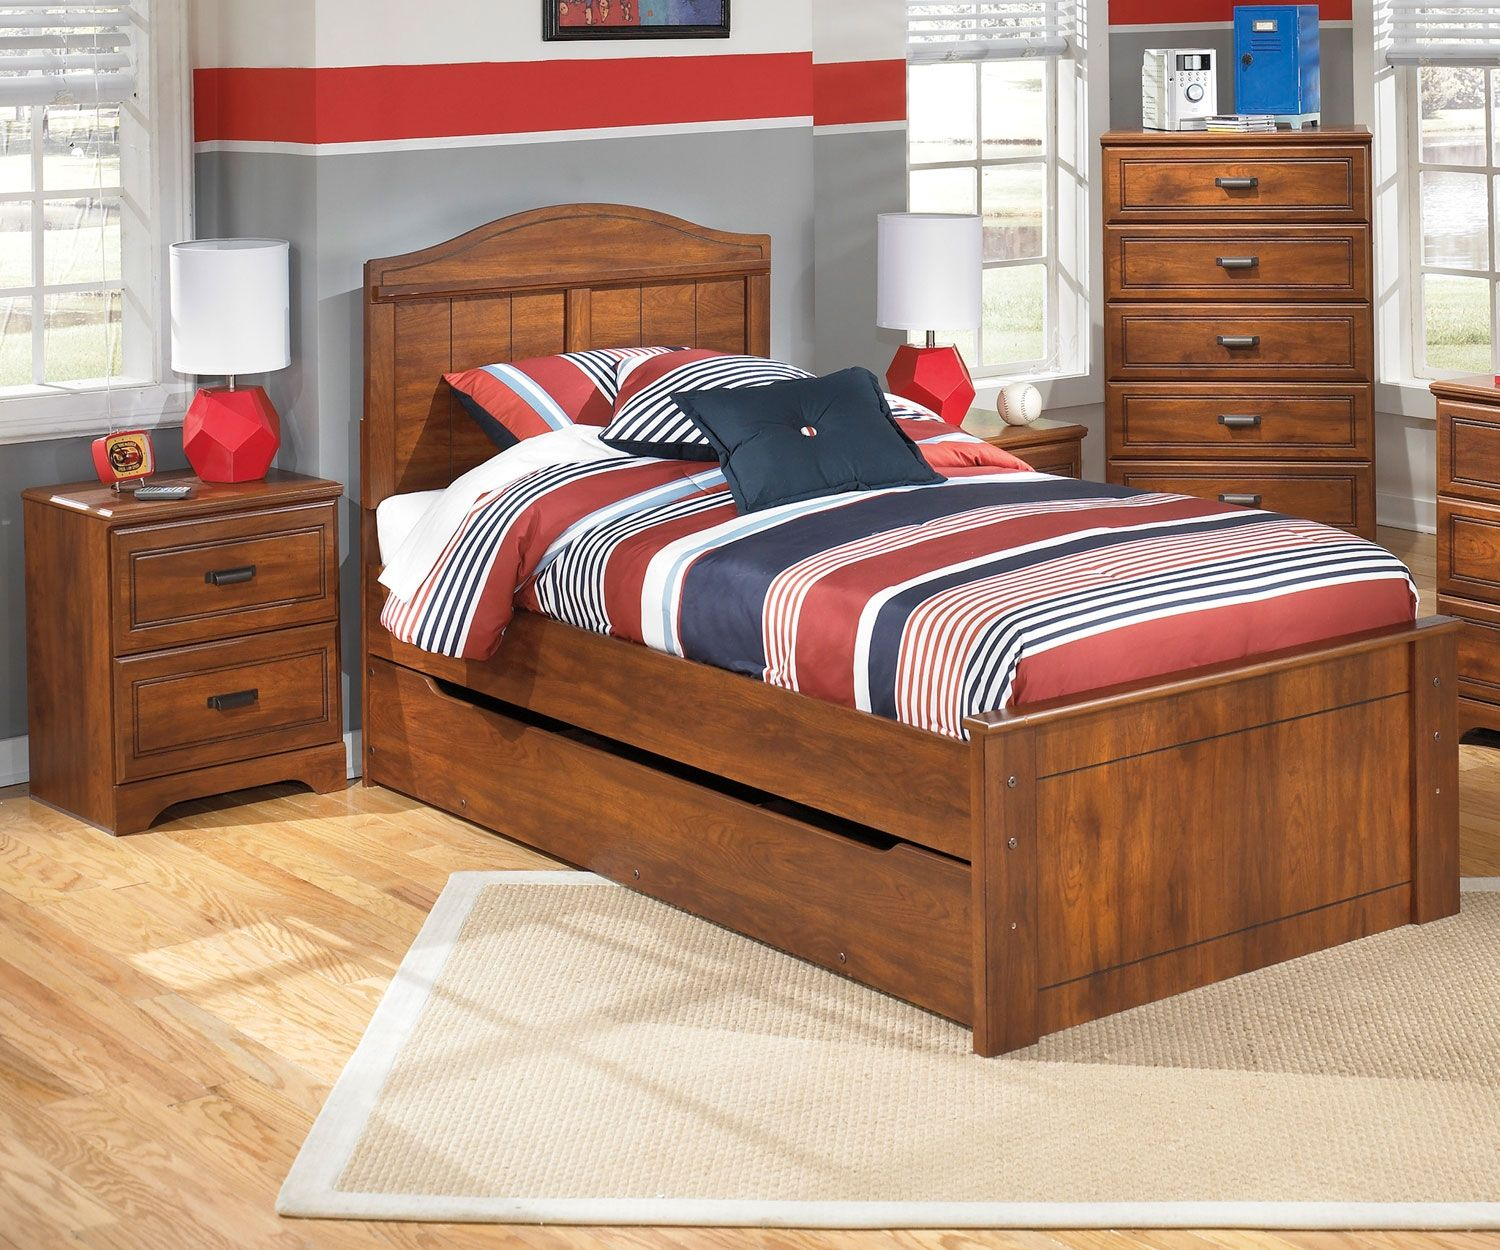 Dexifield Full Panel Bed w/ Trundle Under Bed Storage by